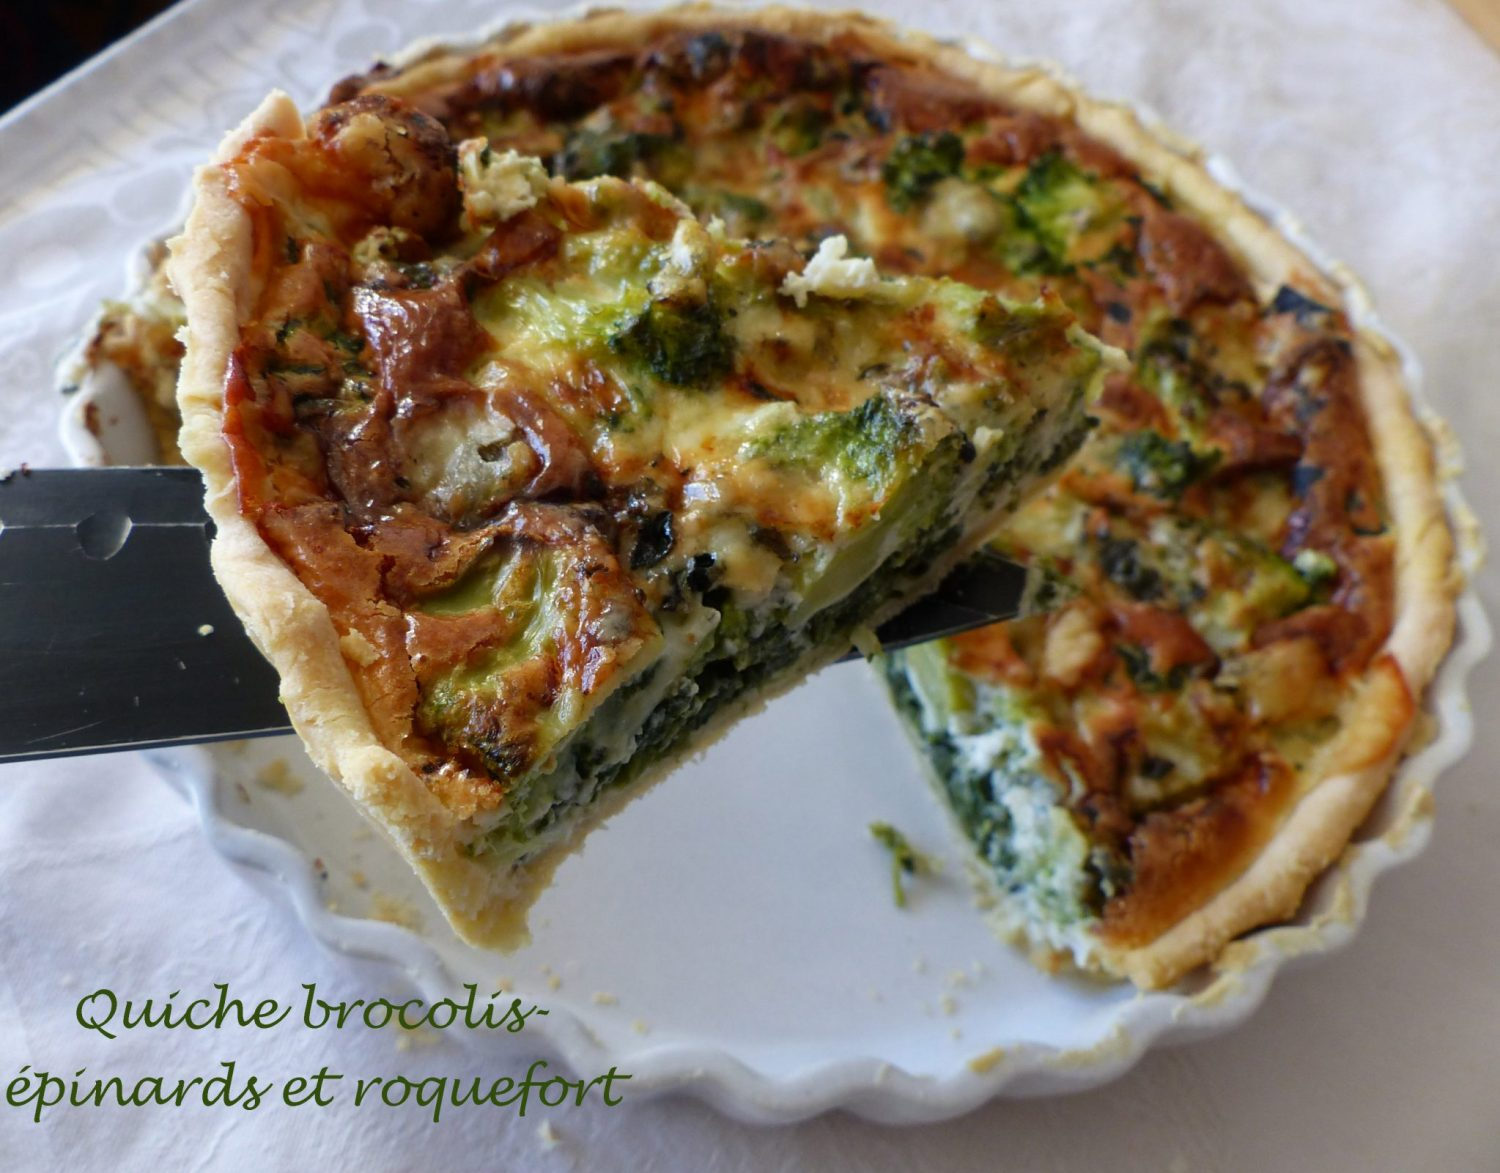 Quiche brocolis-épinards et roquefort P1140750 R